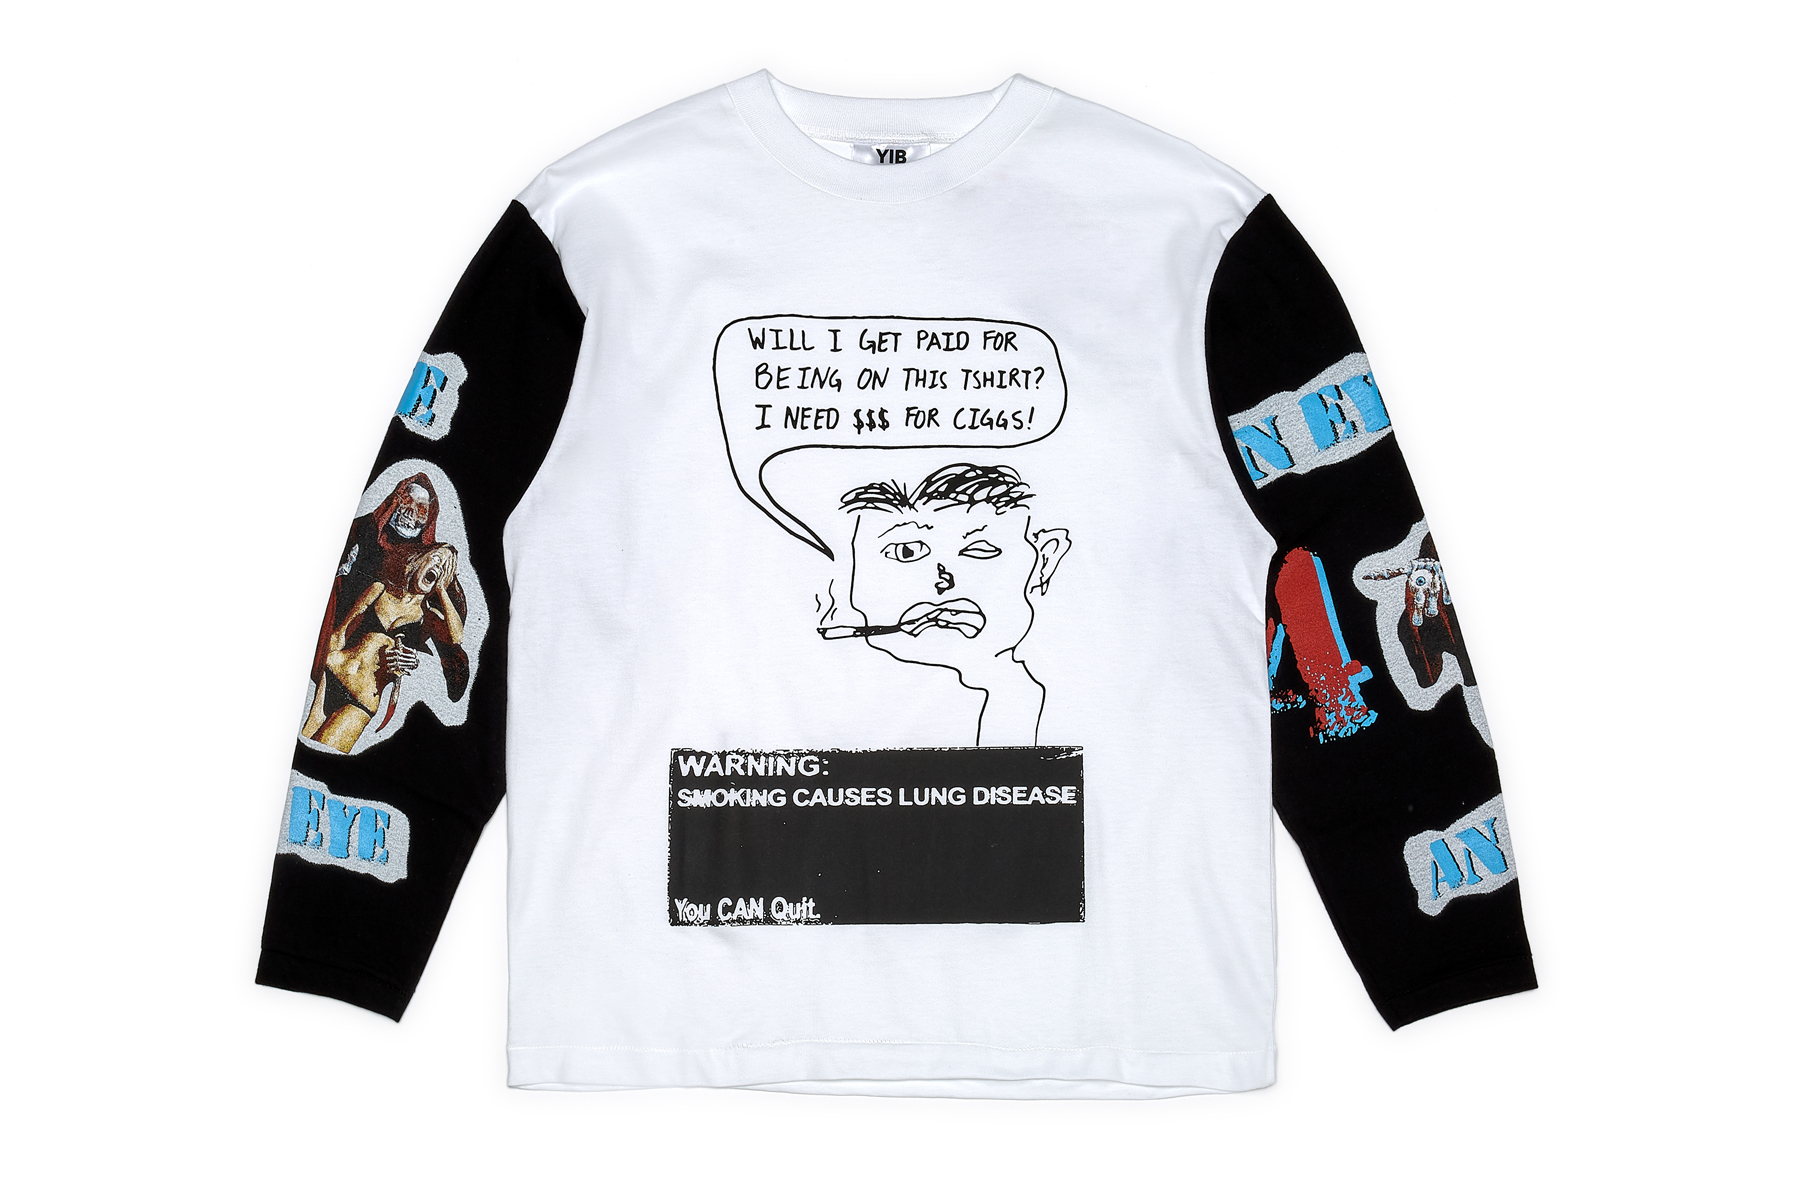 Youths In Balaclava YIB Line apparel collection t-shirts YIB TAPE 1A dsm dover street market